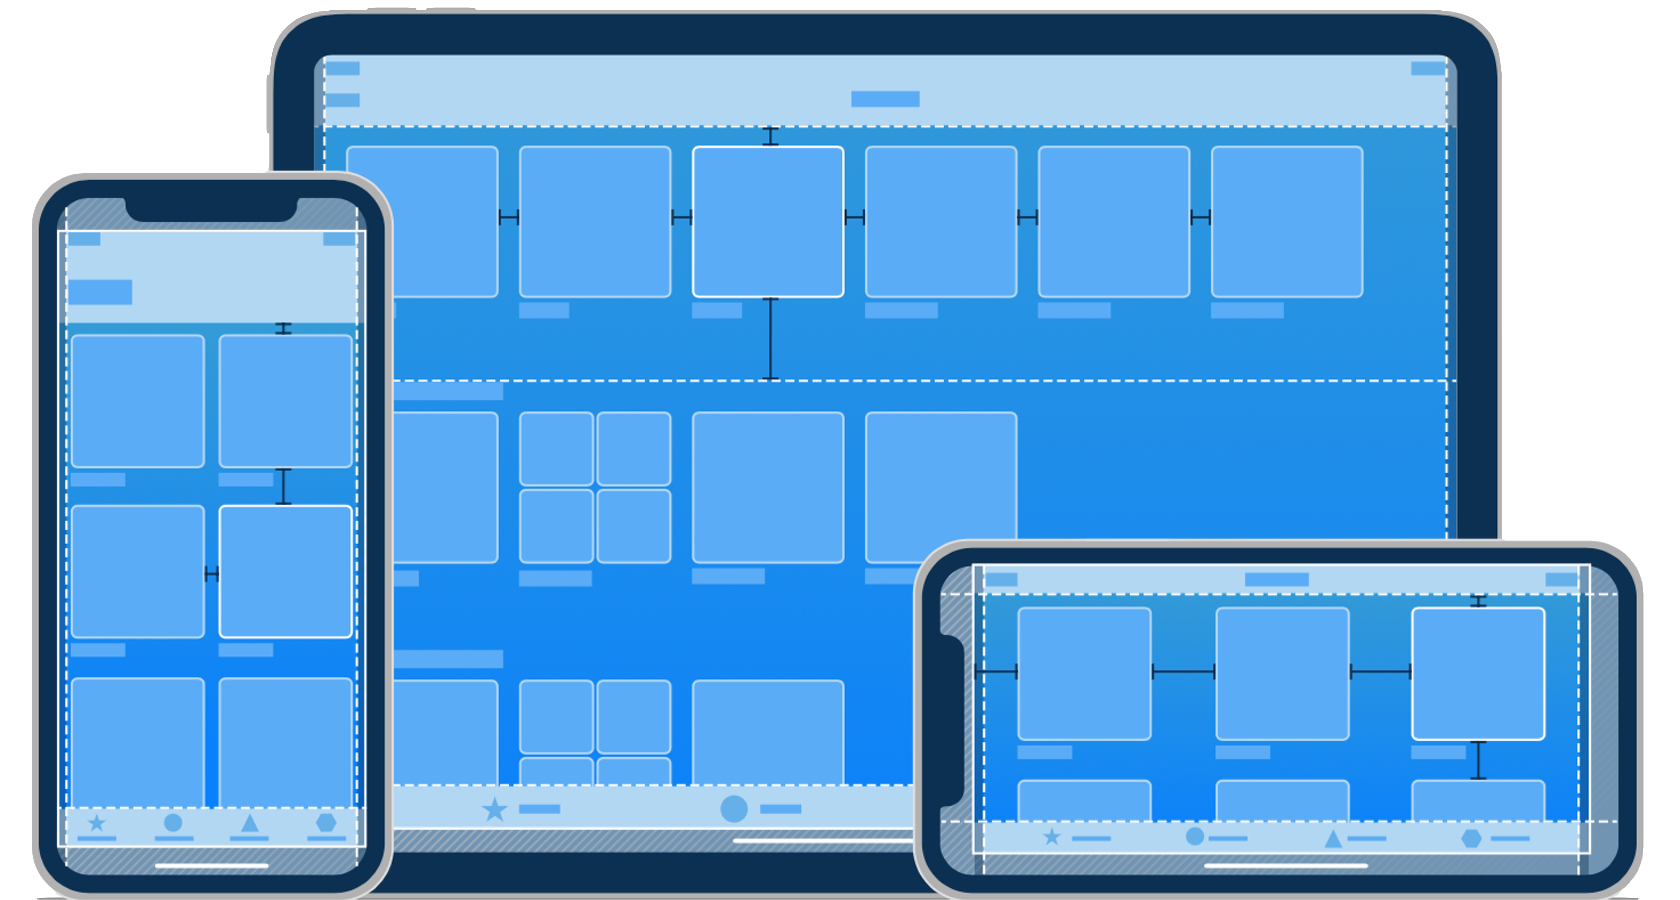 Human Interface Guidelines for mobile design